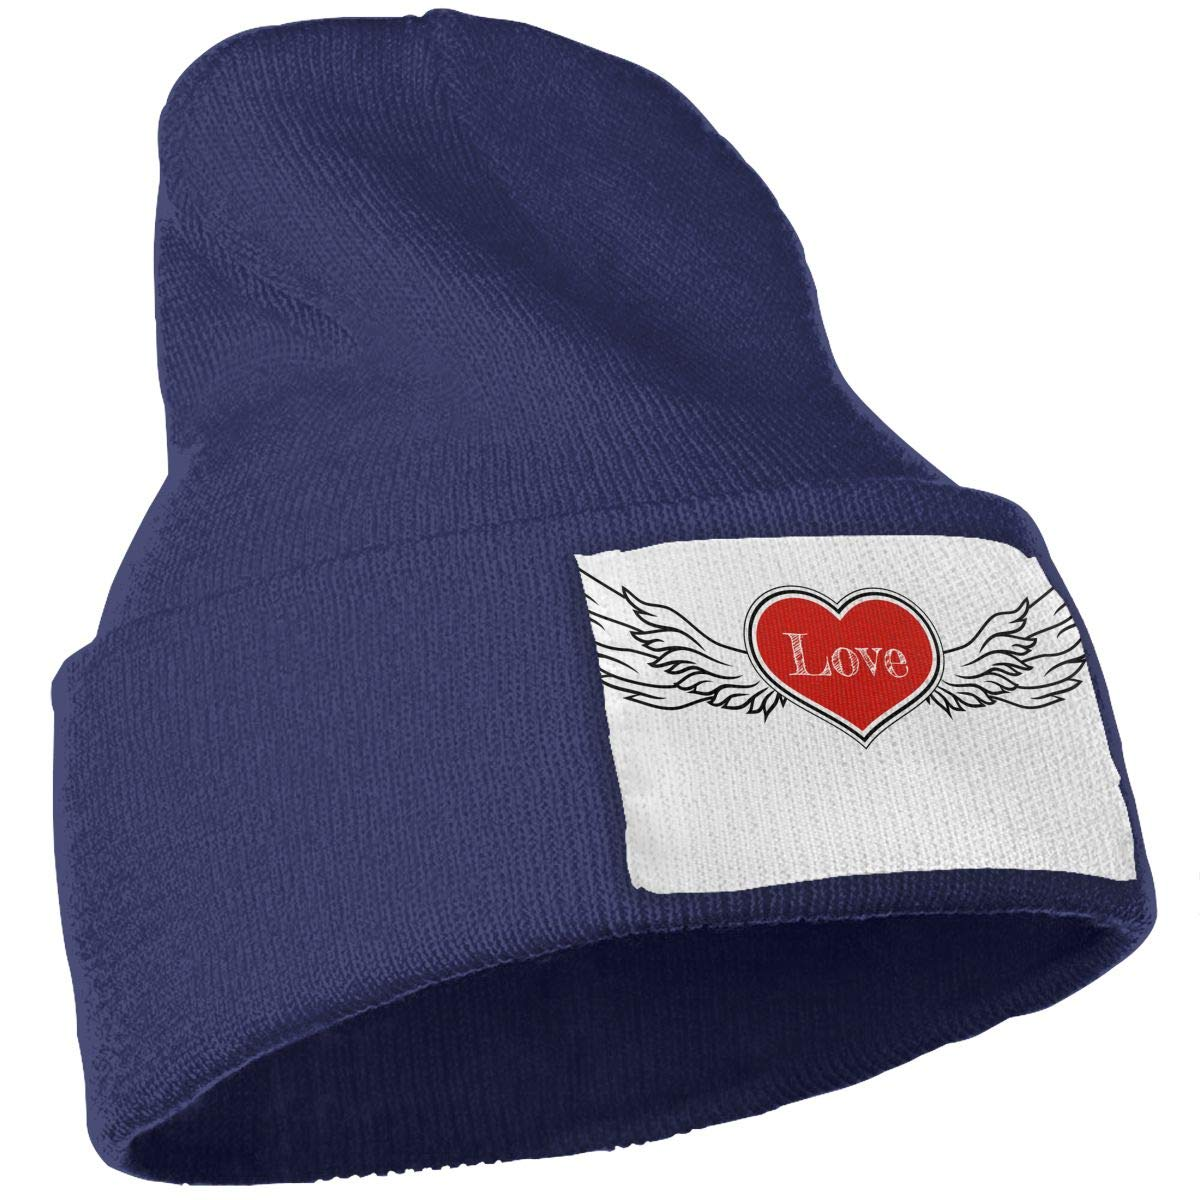 QZqDQ A Heart with Wings Unisex Fashion Knitted Hat Luxury Hip-Hop Cap